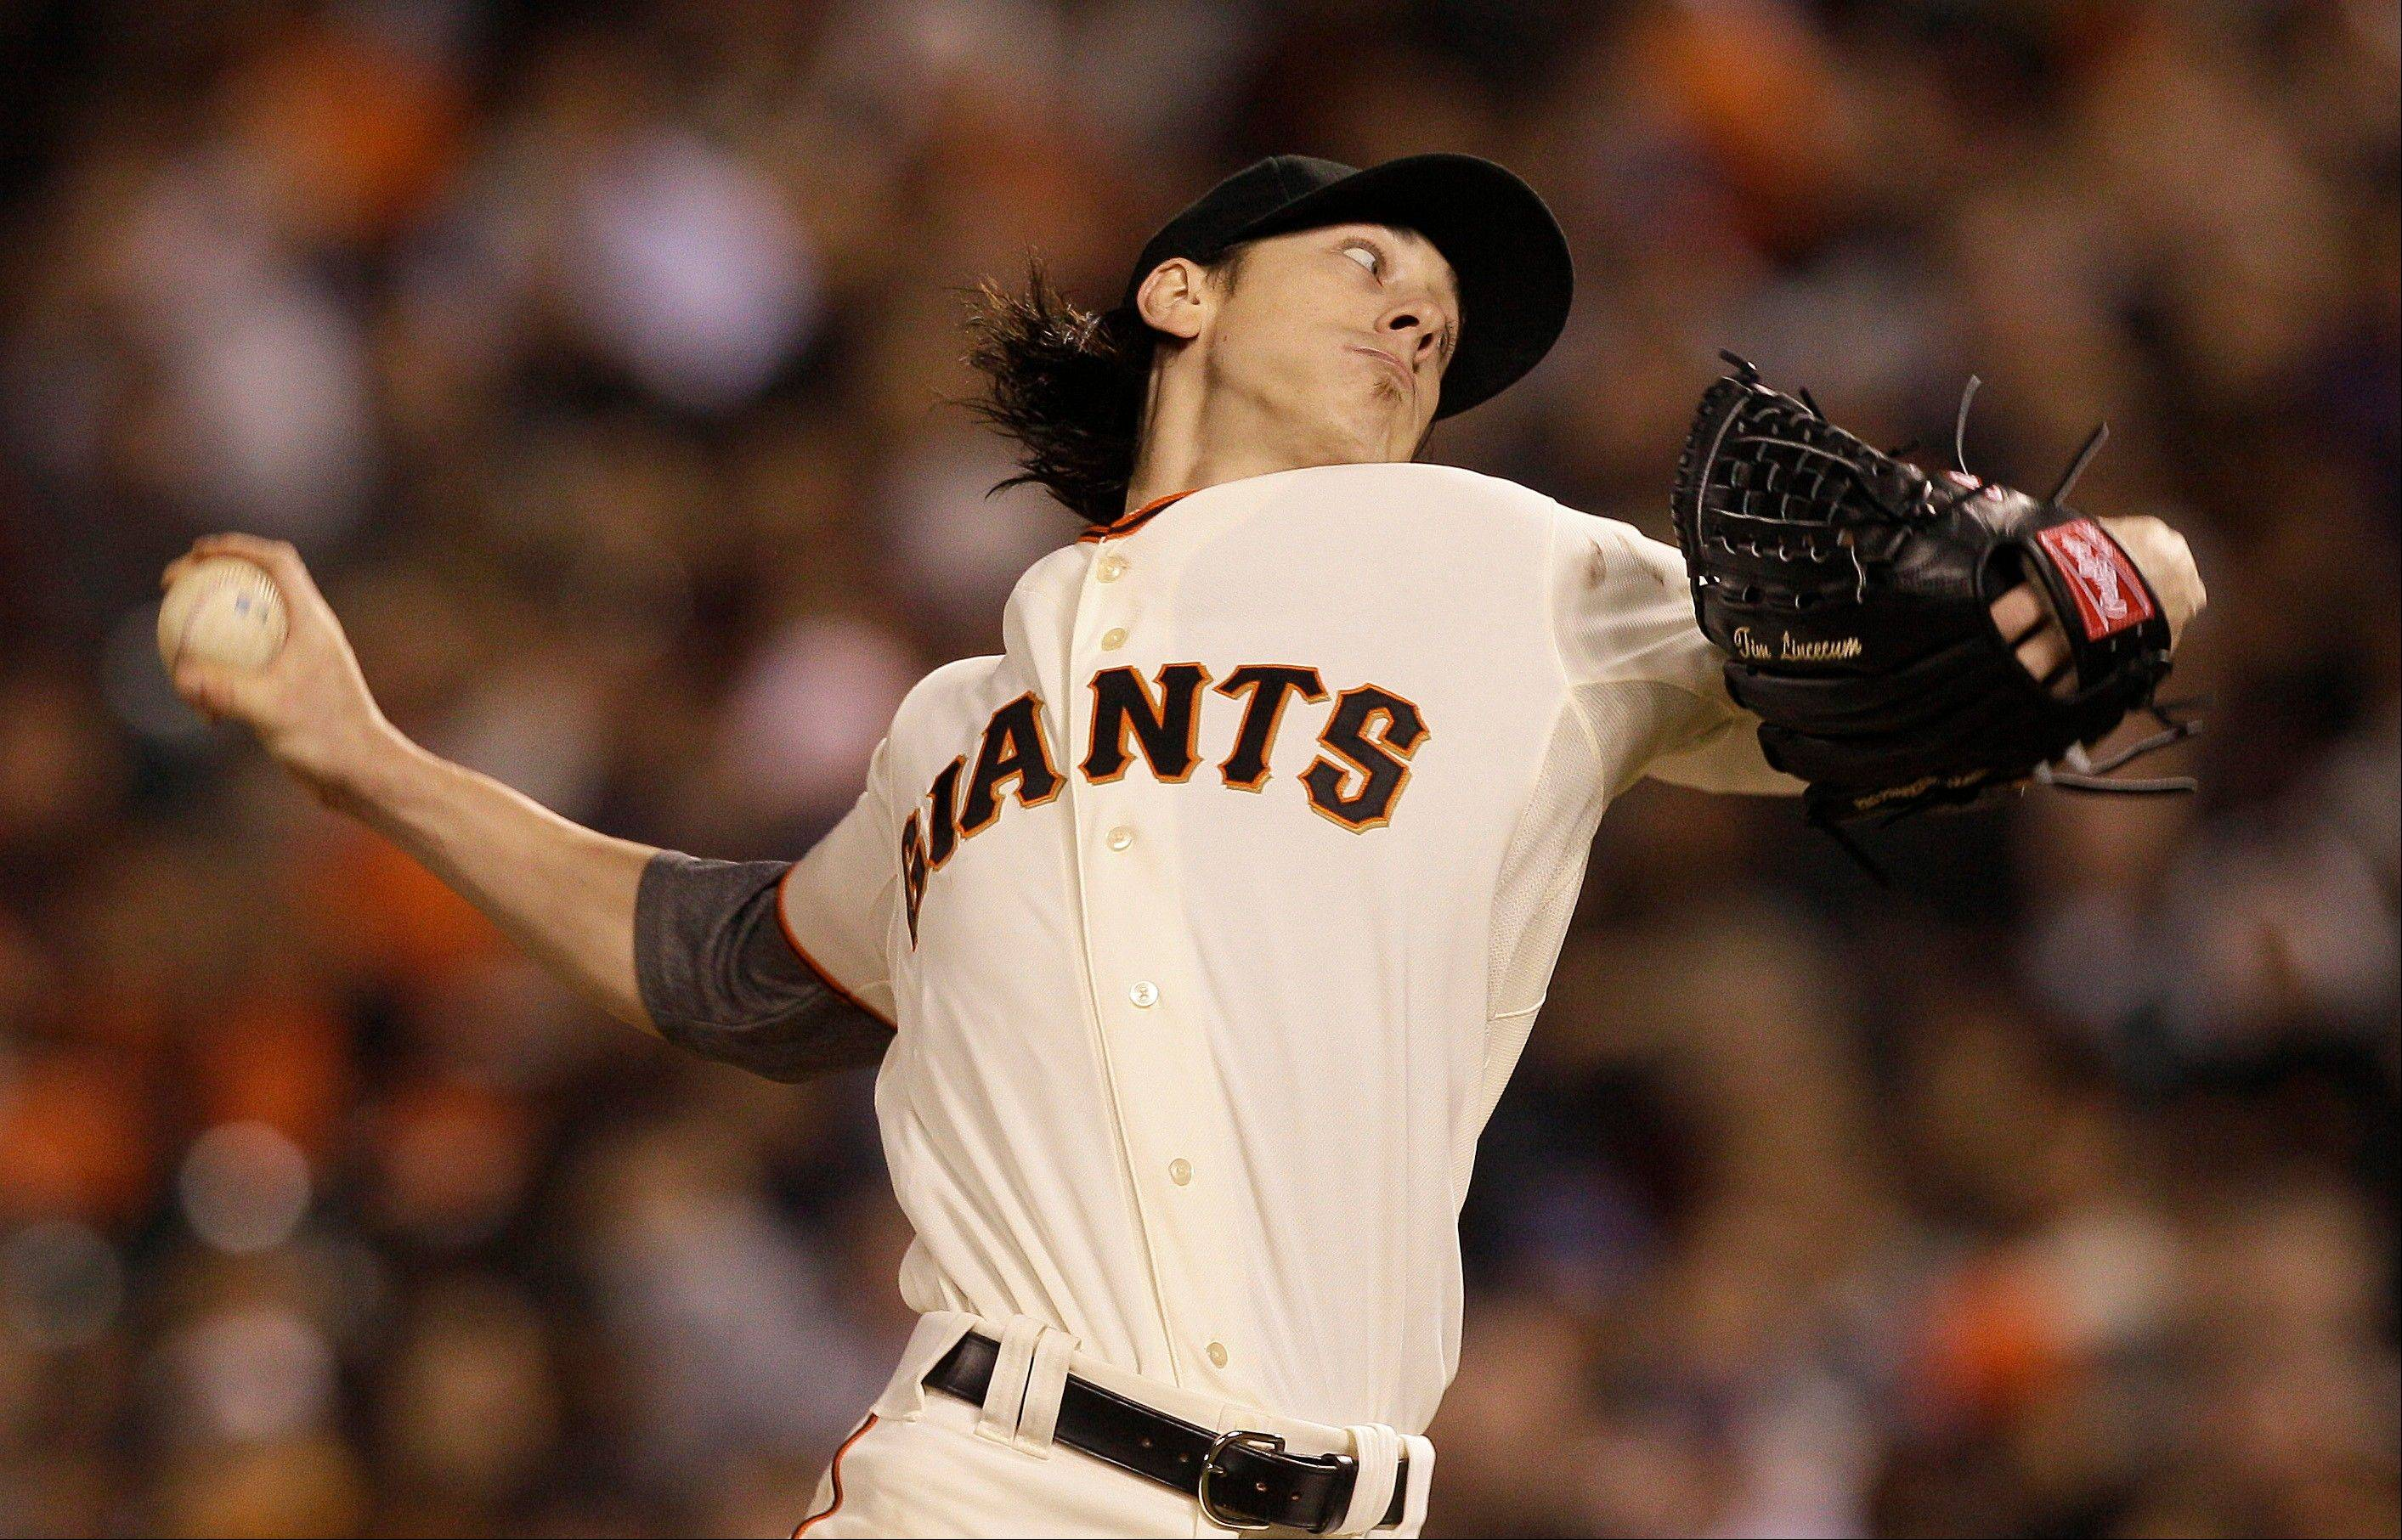 Giants pitcher Tim Lincecum delivers against the New York Mets during the seventh inning Tuesday in San Francisco.